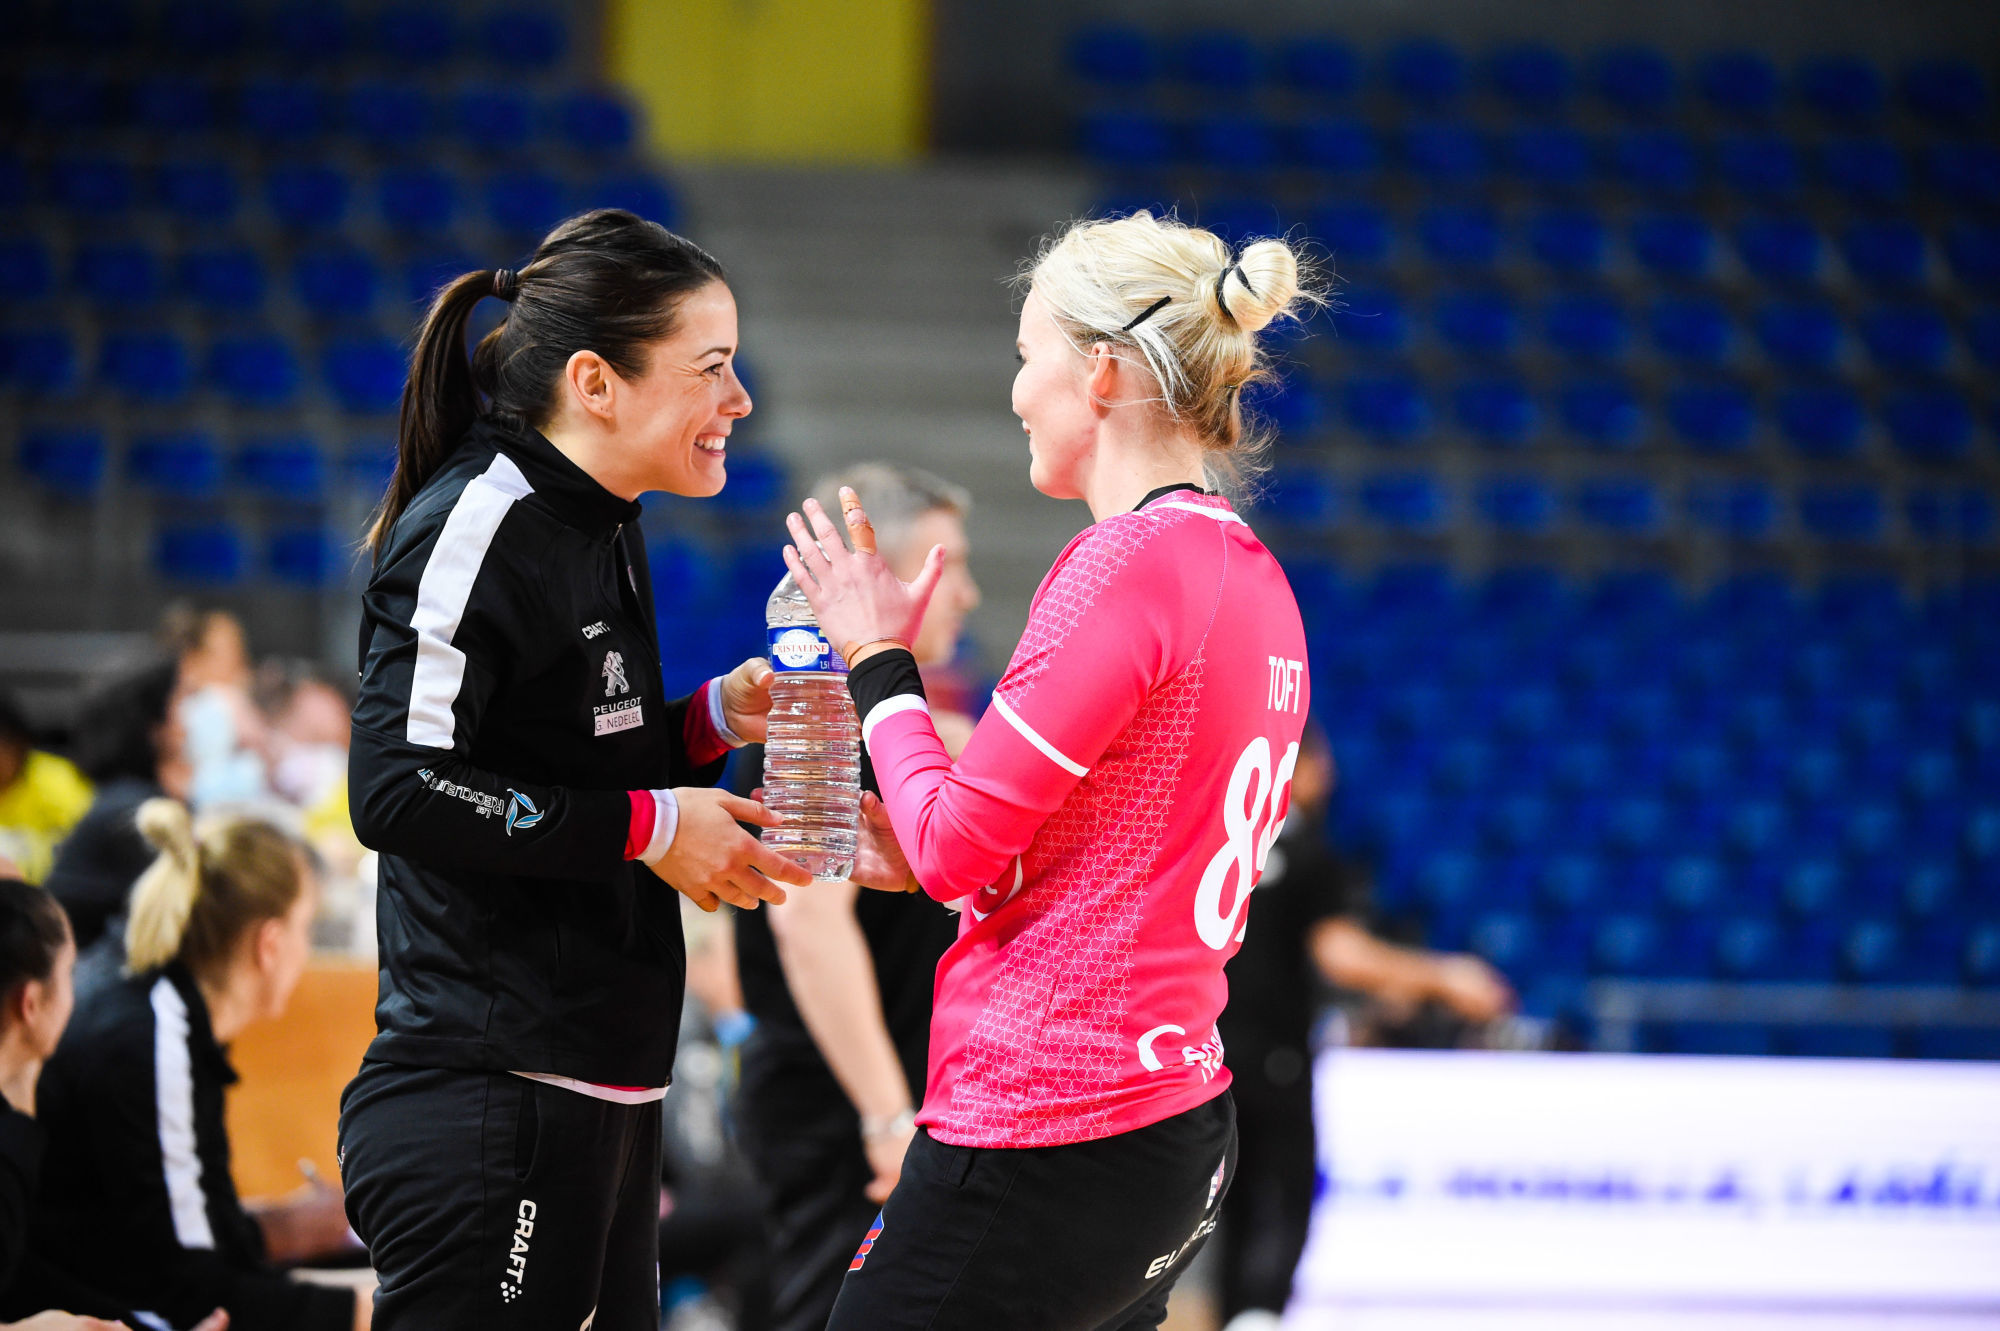 Cleopatre DARLEUX of Brest and Sandra TOFT of Brest during the LFH - Ligue Butagaz Energie match between Metz and Brest on March 28, 2021 in Metz, France. (Photo by Sebastien Bozon/Icon Sport) - Palais Omnisports Les Arenes Metz - Metz (France)